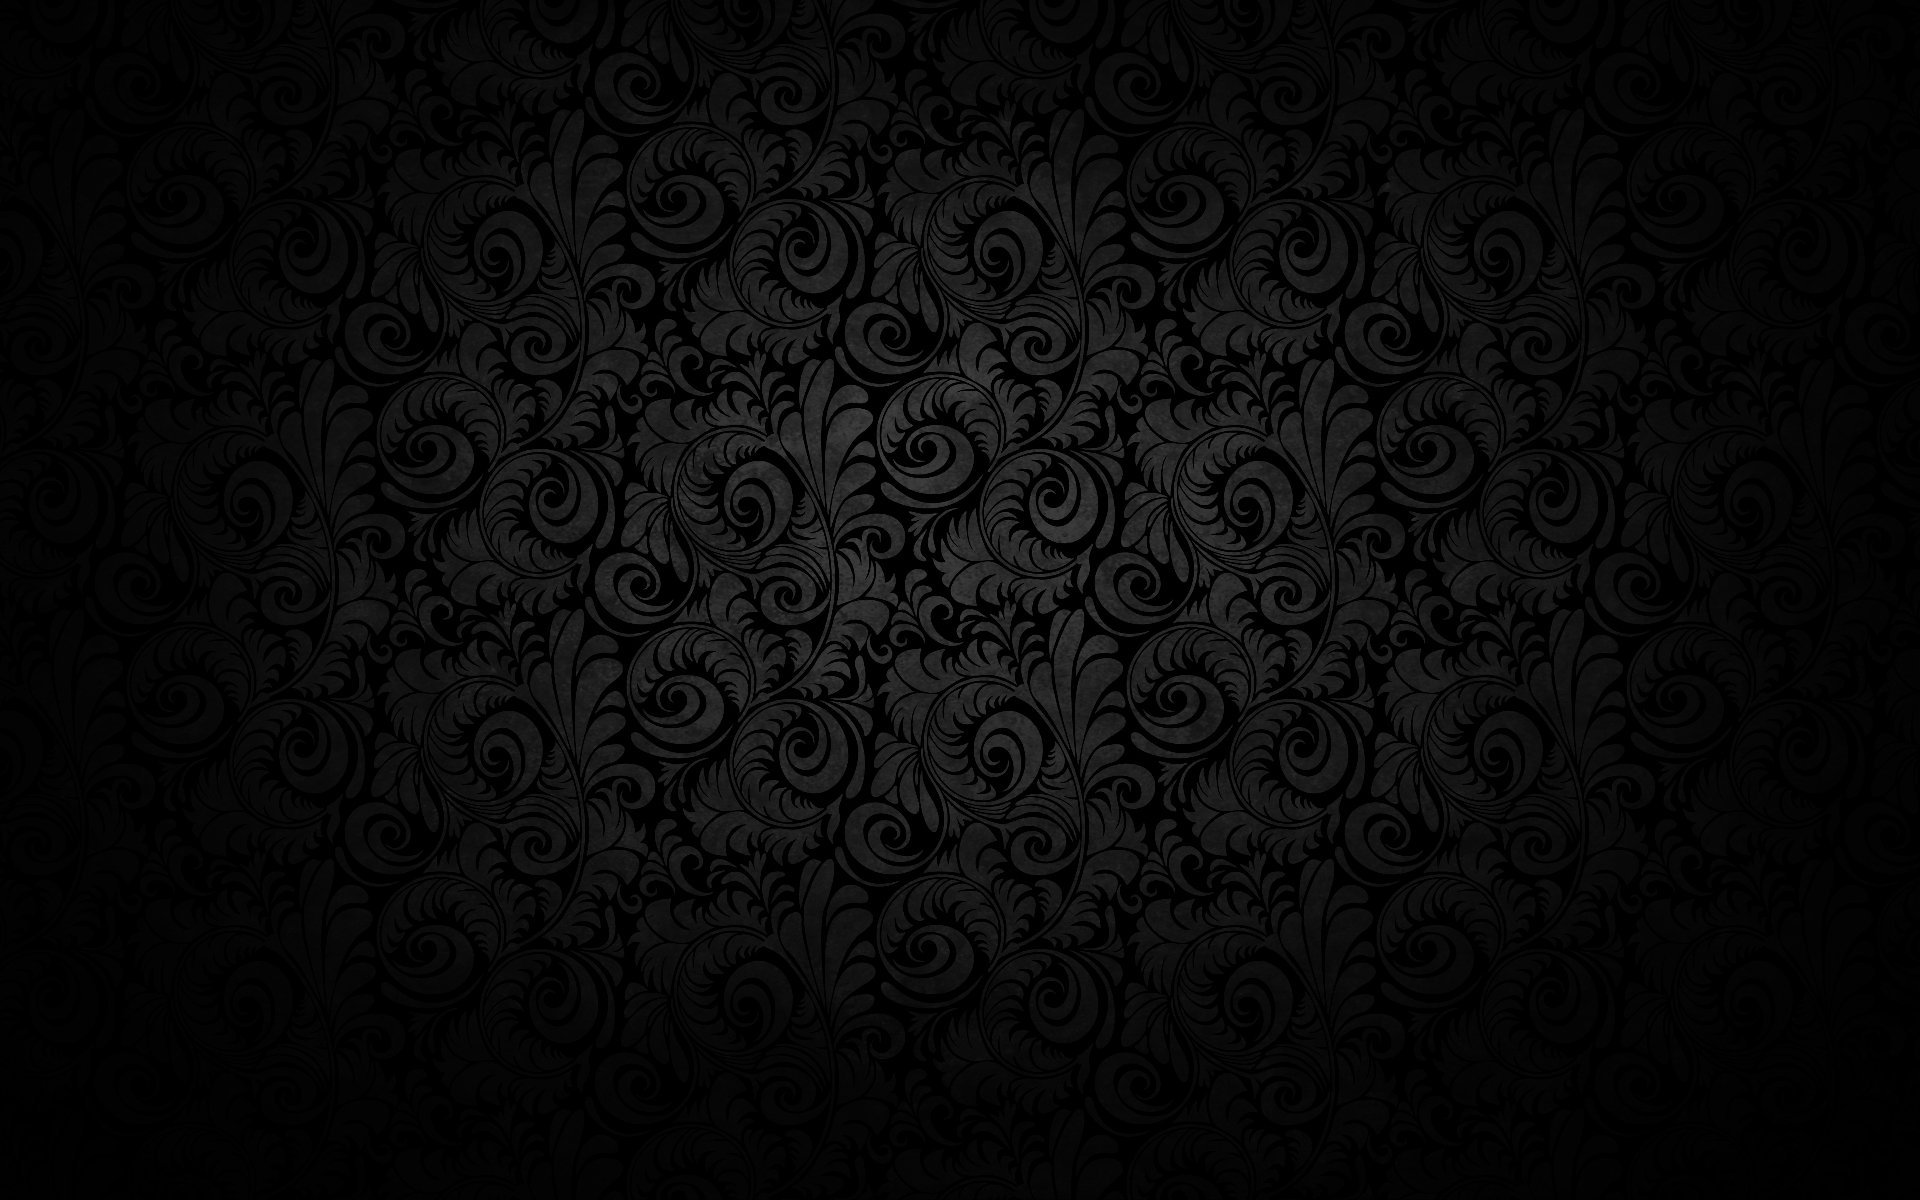 Black background wallpapers  Android Apps on Google Play 1920x1200